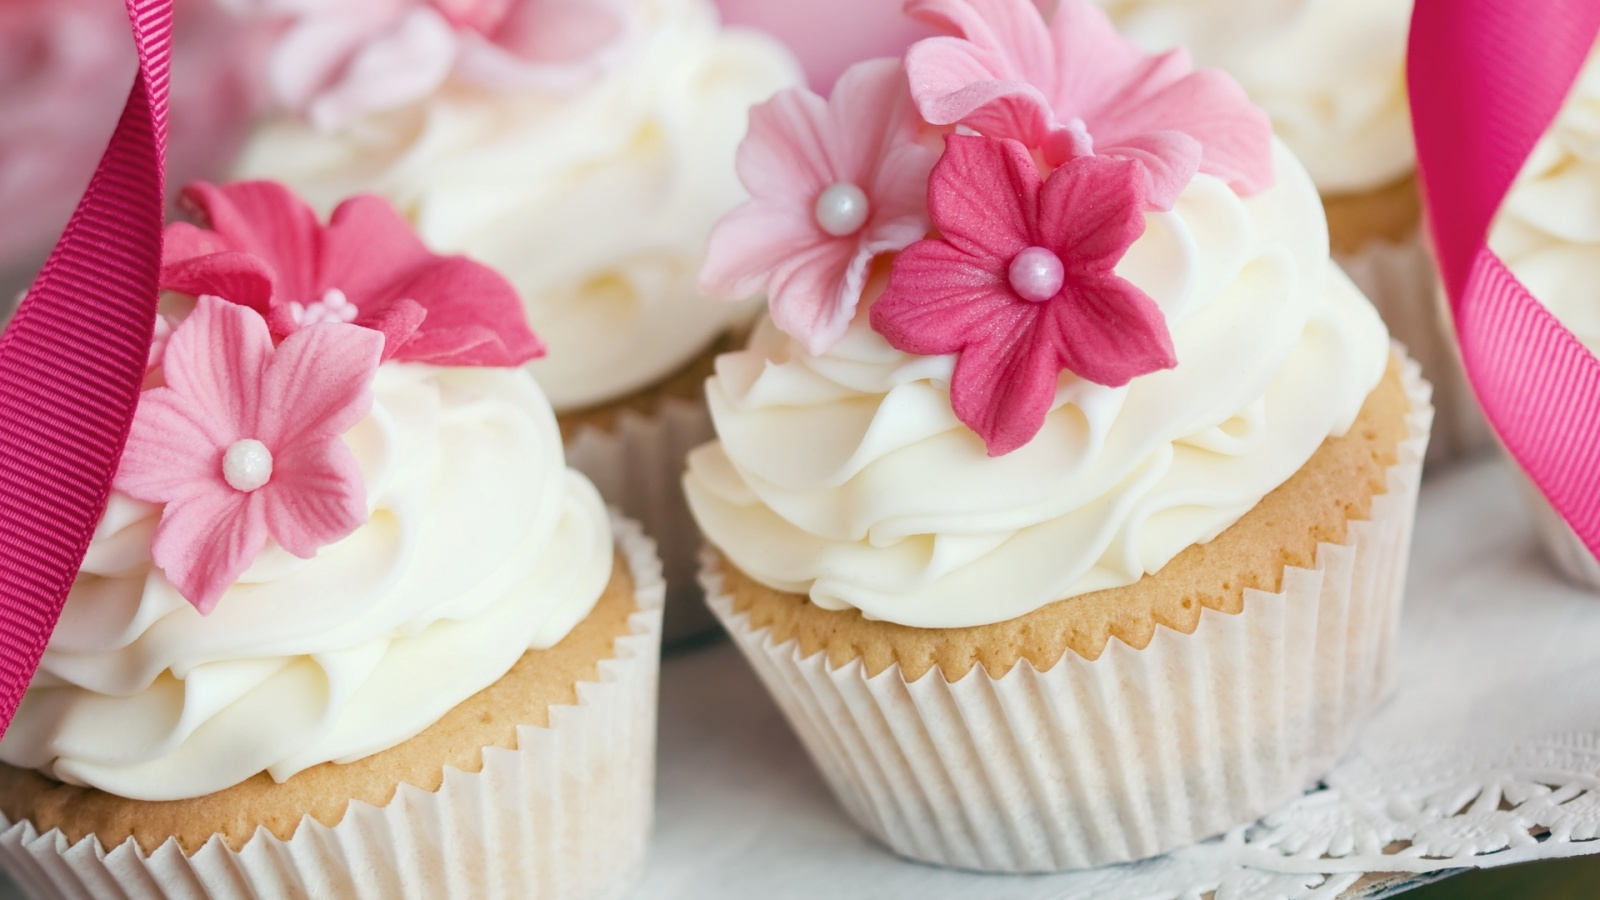 Wedding pink cupcakes | 1600 x 900 | download | close